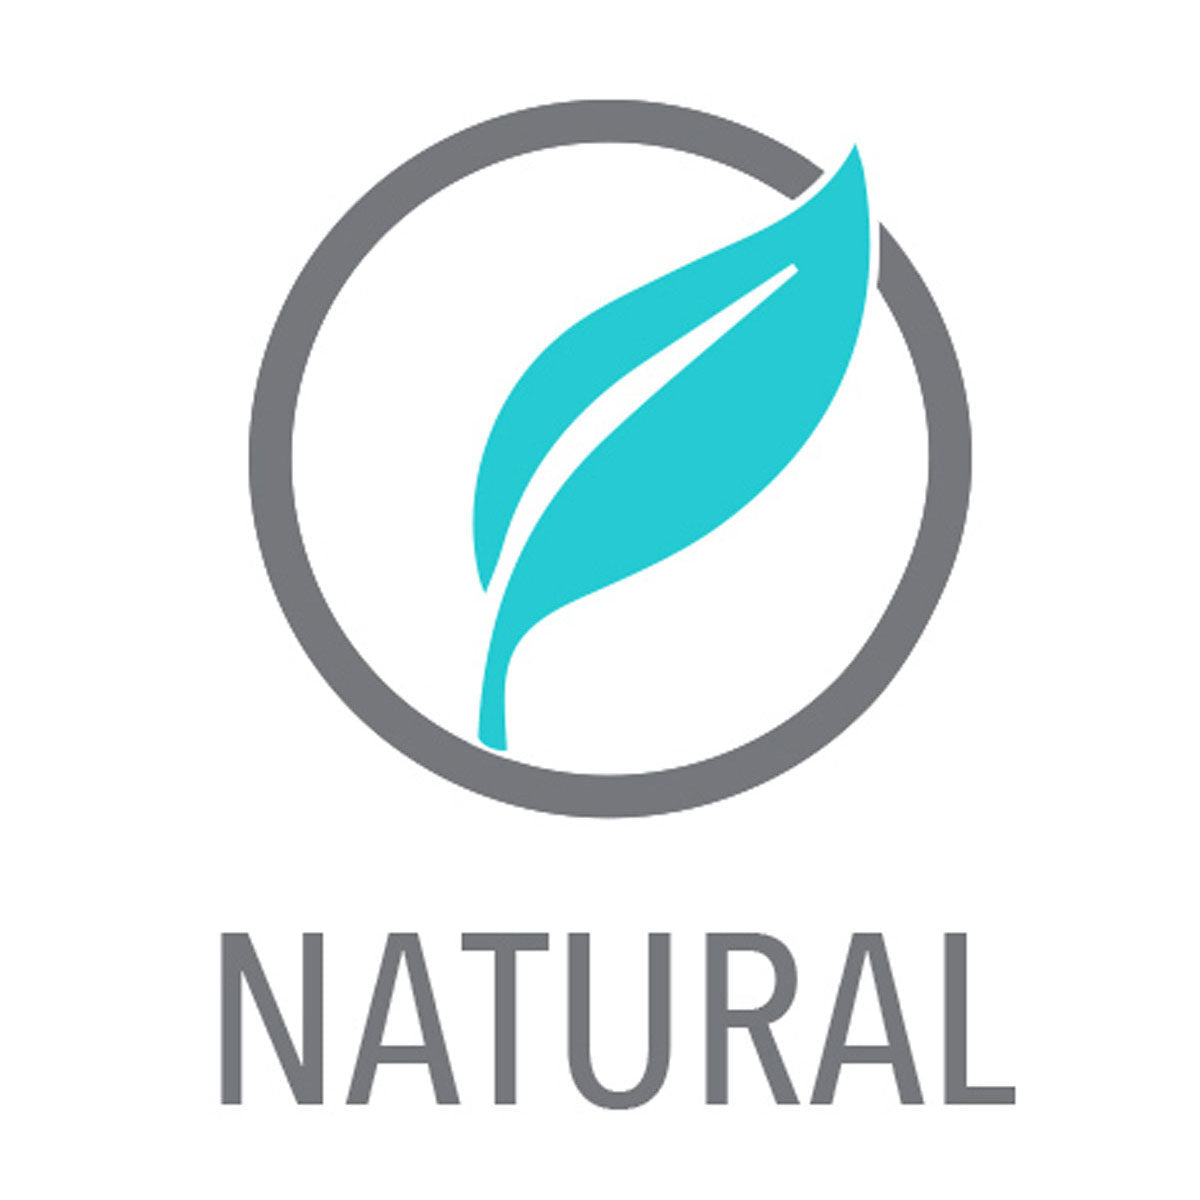 CNC botanics is Made With All Natural Ingredients